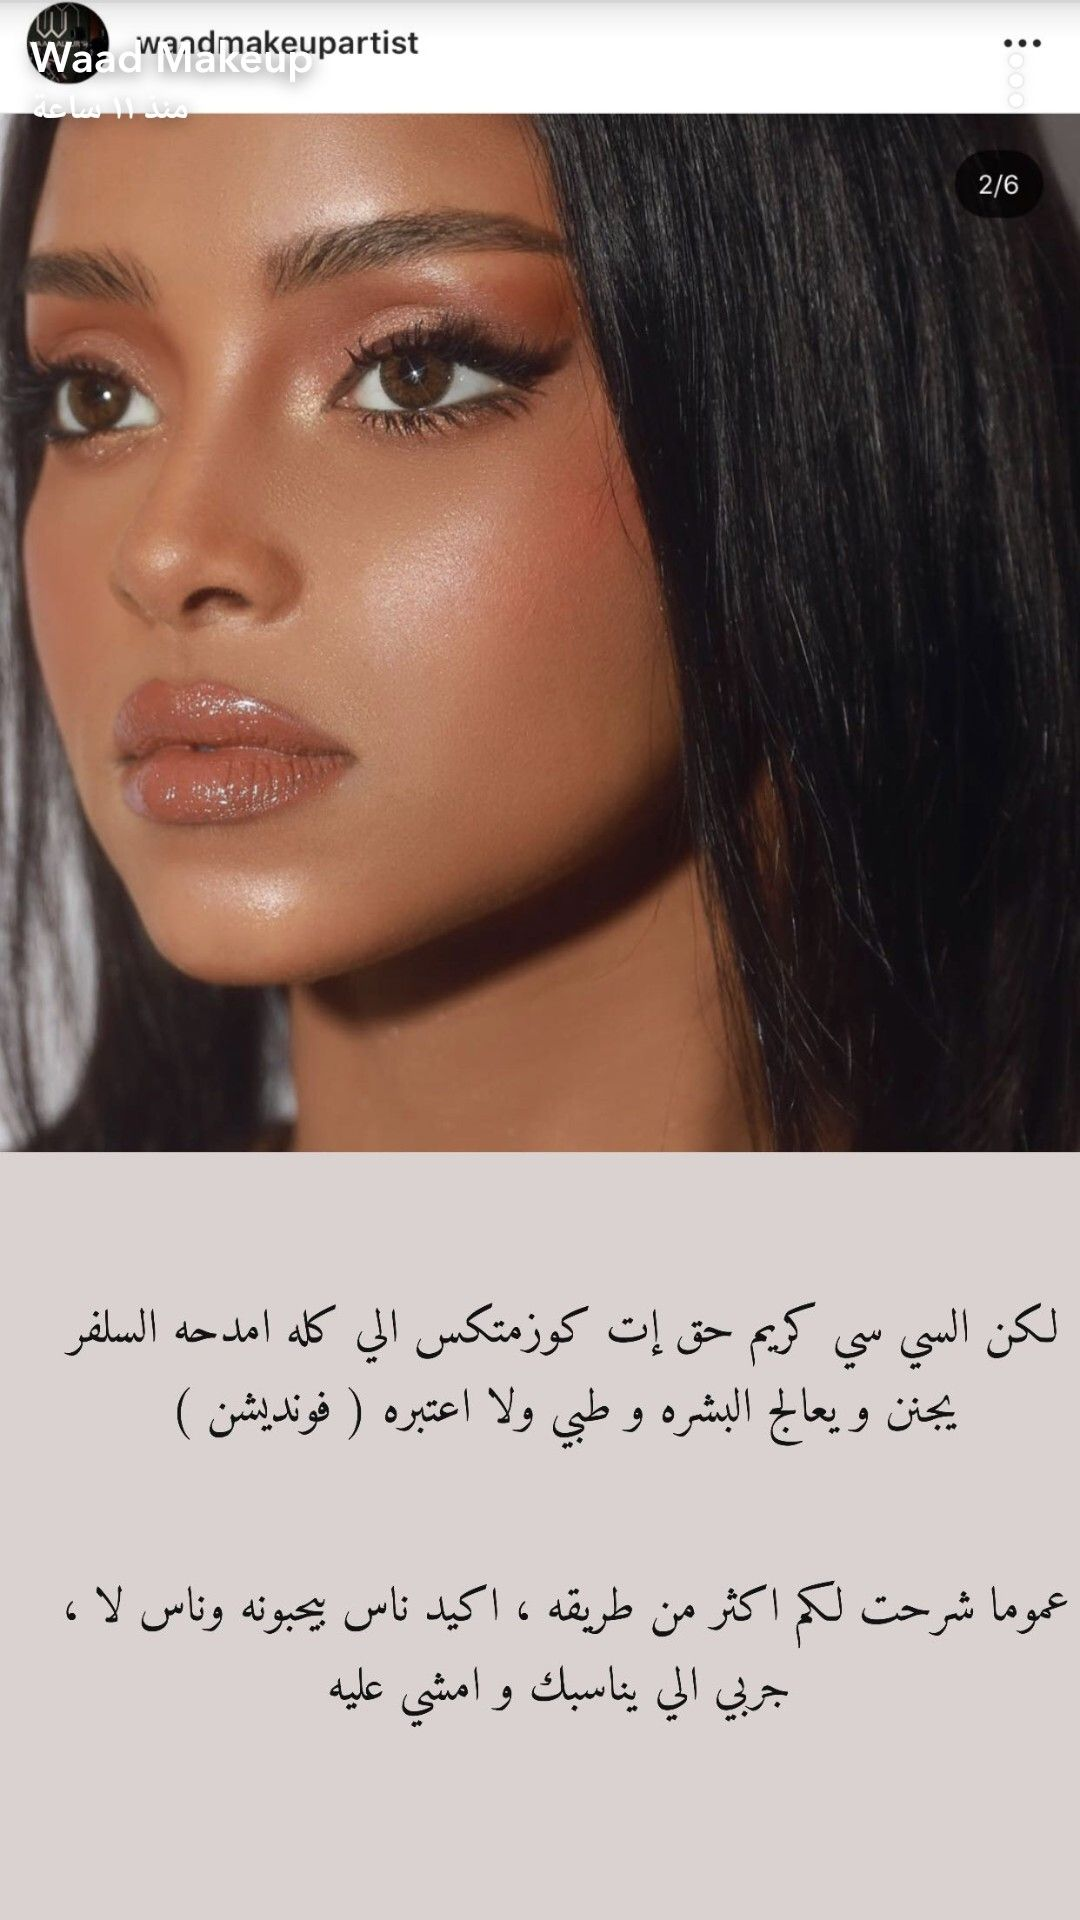 Pin By وهم On وعد التركي Makeup Make Up How To Make